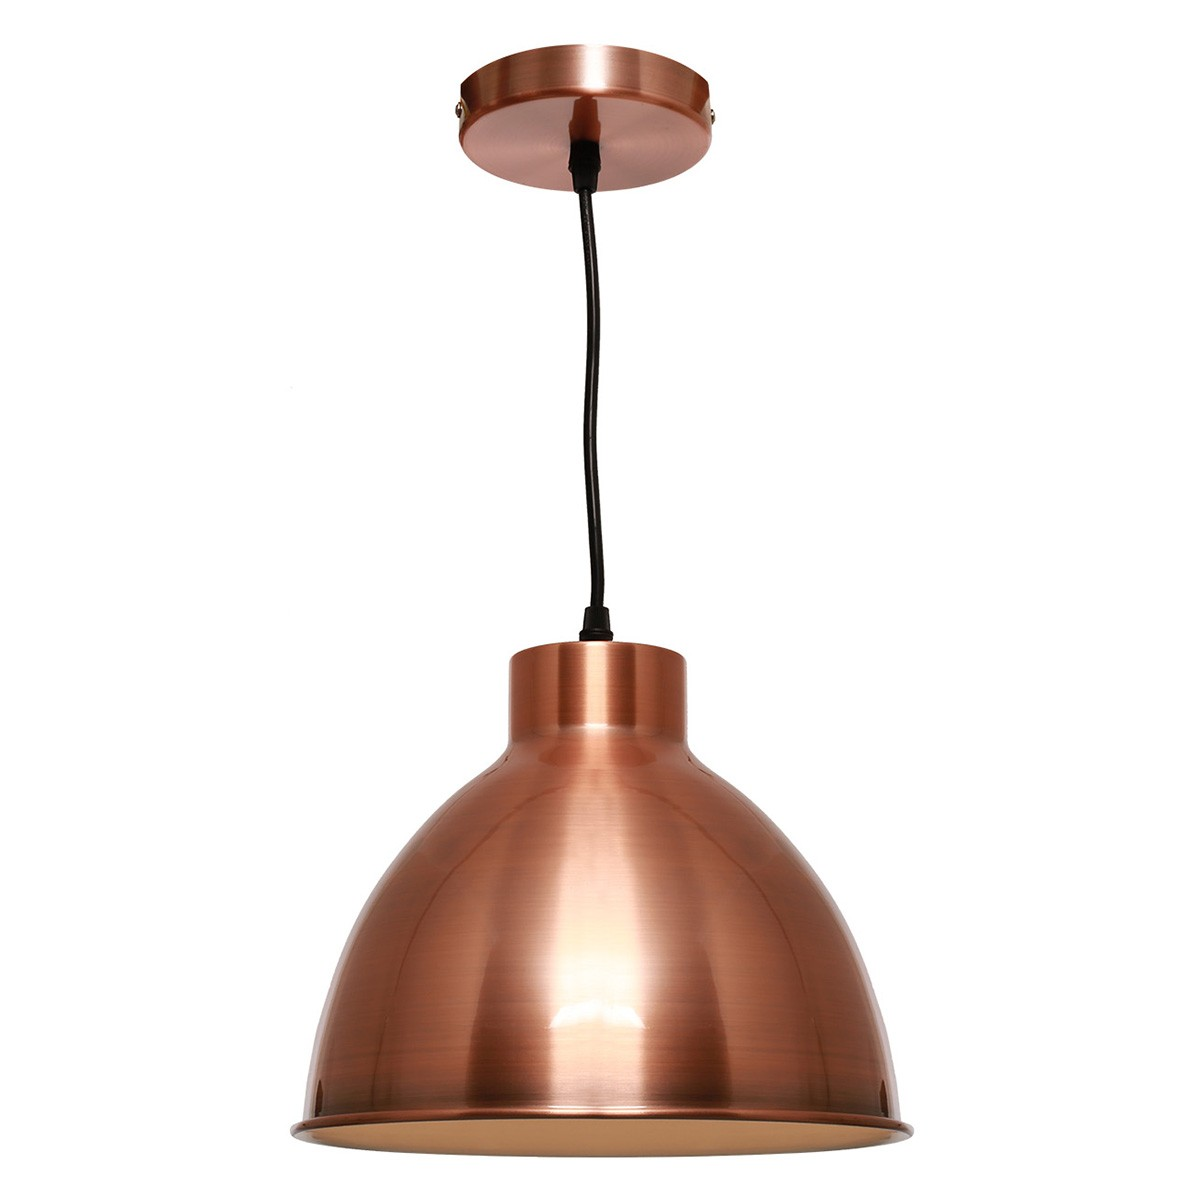 Dome Metal Pendant Lighting, Copper